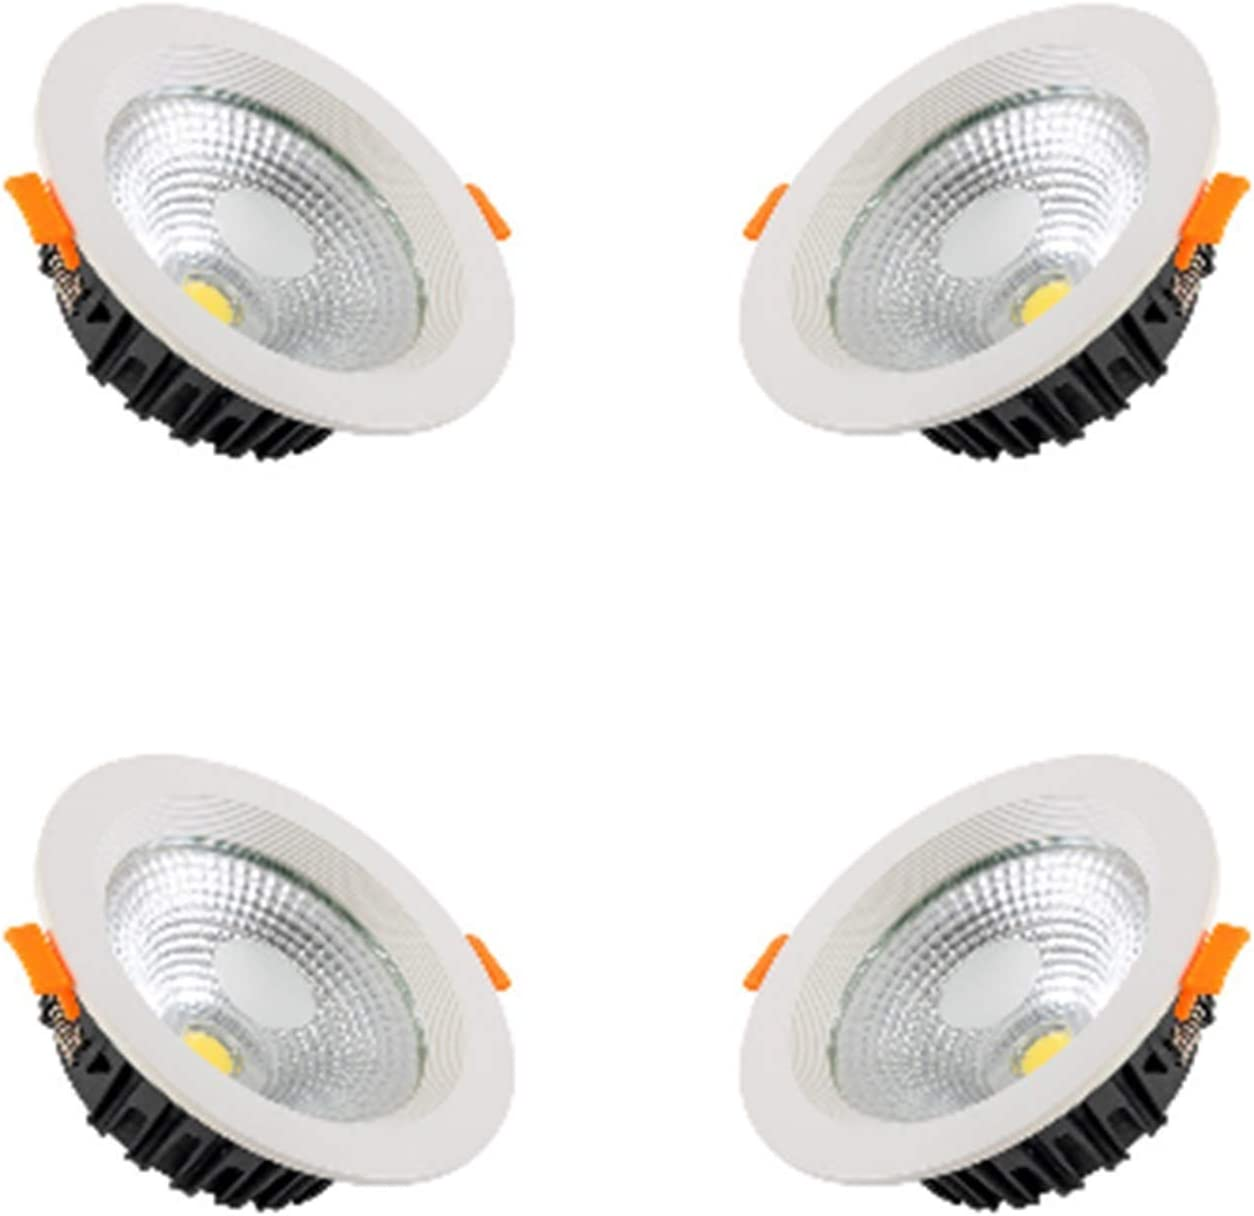 BDSHL 4 We OFFer at cheap prices Pack LED Recessed Downlight Die-Castin to Finally popular brand 8 2.5inch Inch